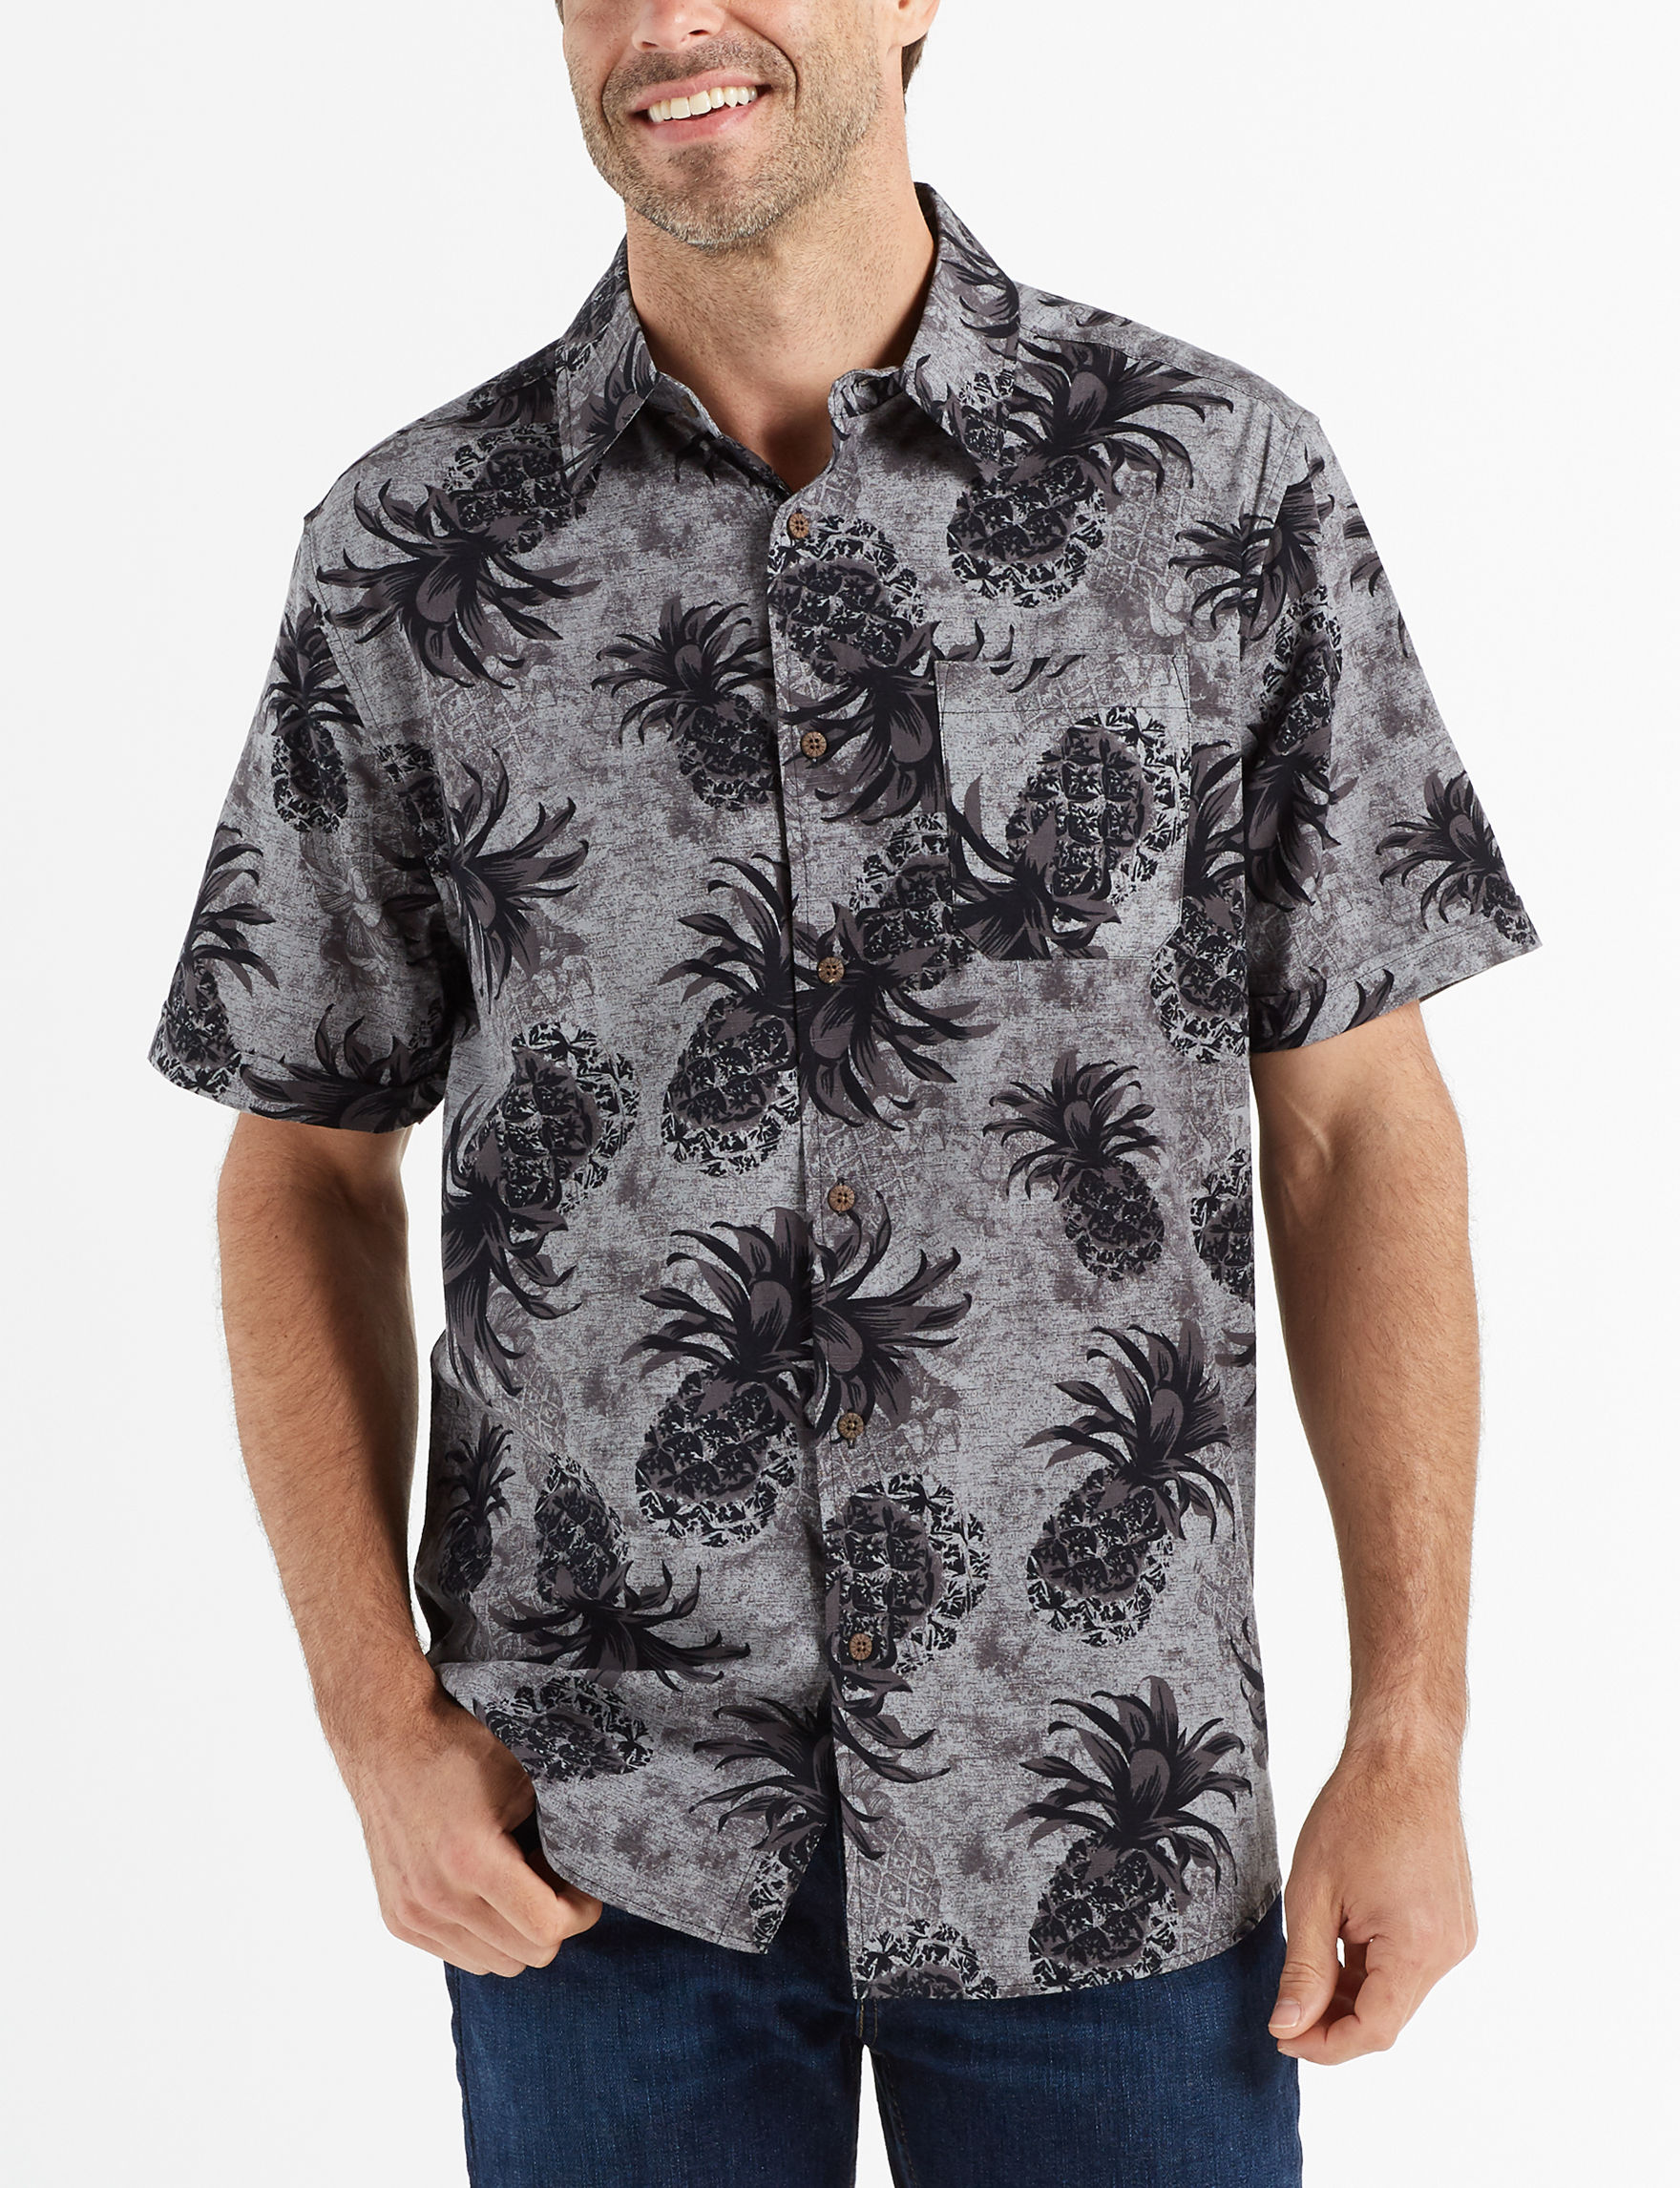 Tricots St. Raphael Charcoal / Black Casual Button Down Shirts